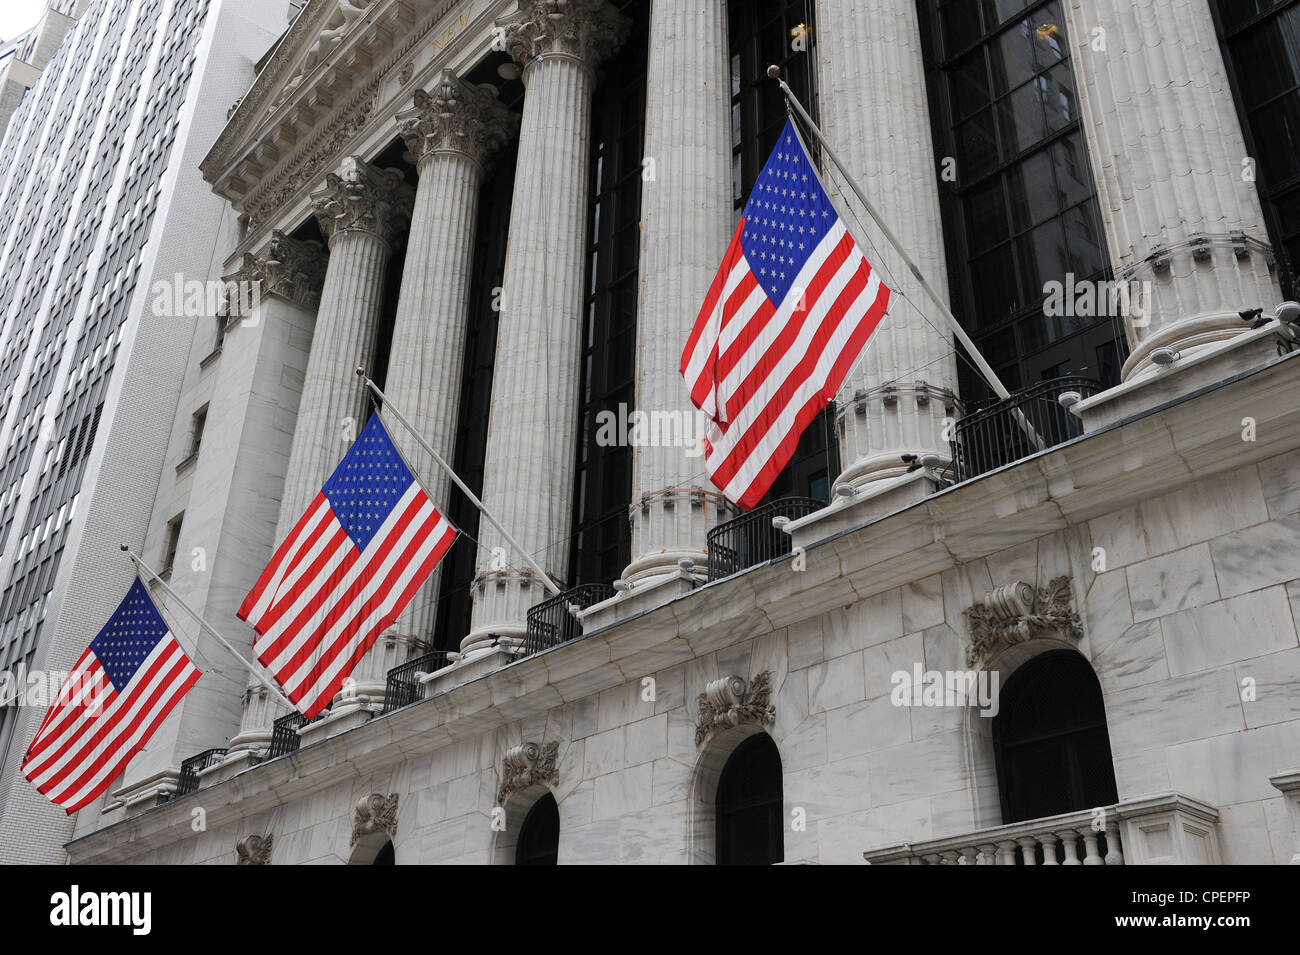 American Flags on the New York Stock Exchange - Stock Image